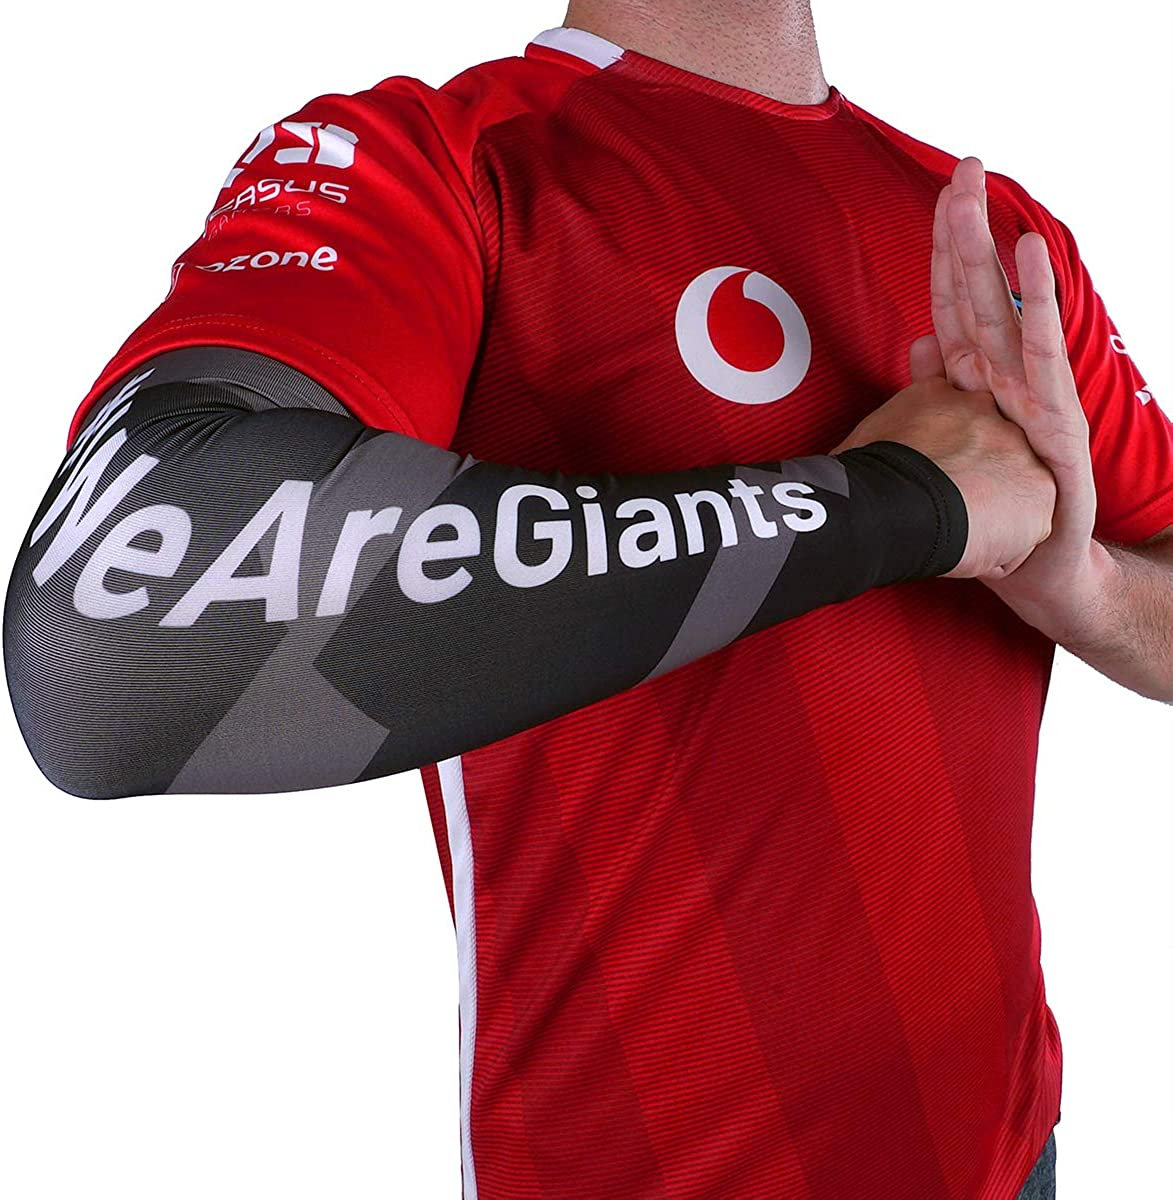 Vodafone Giants Technical Sleeve Giants Heaters